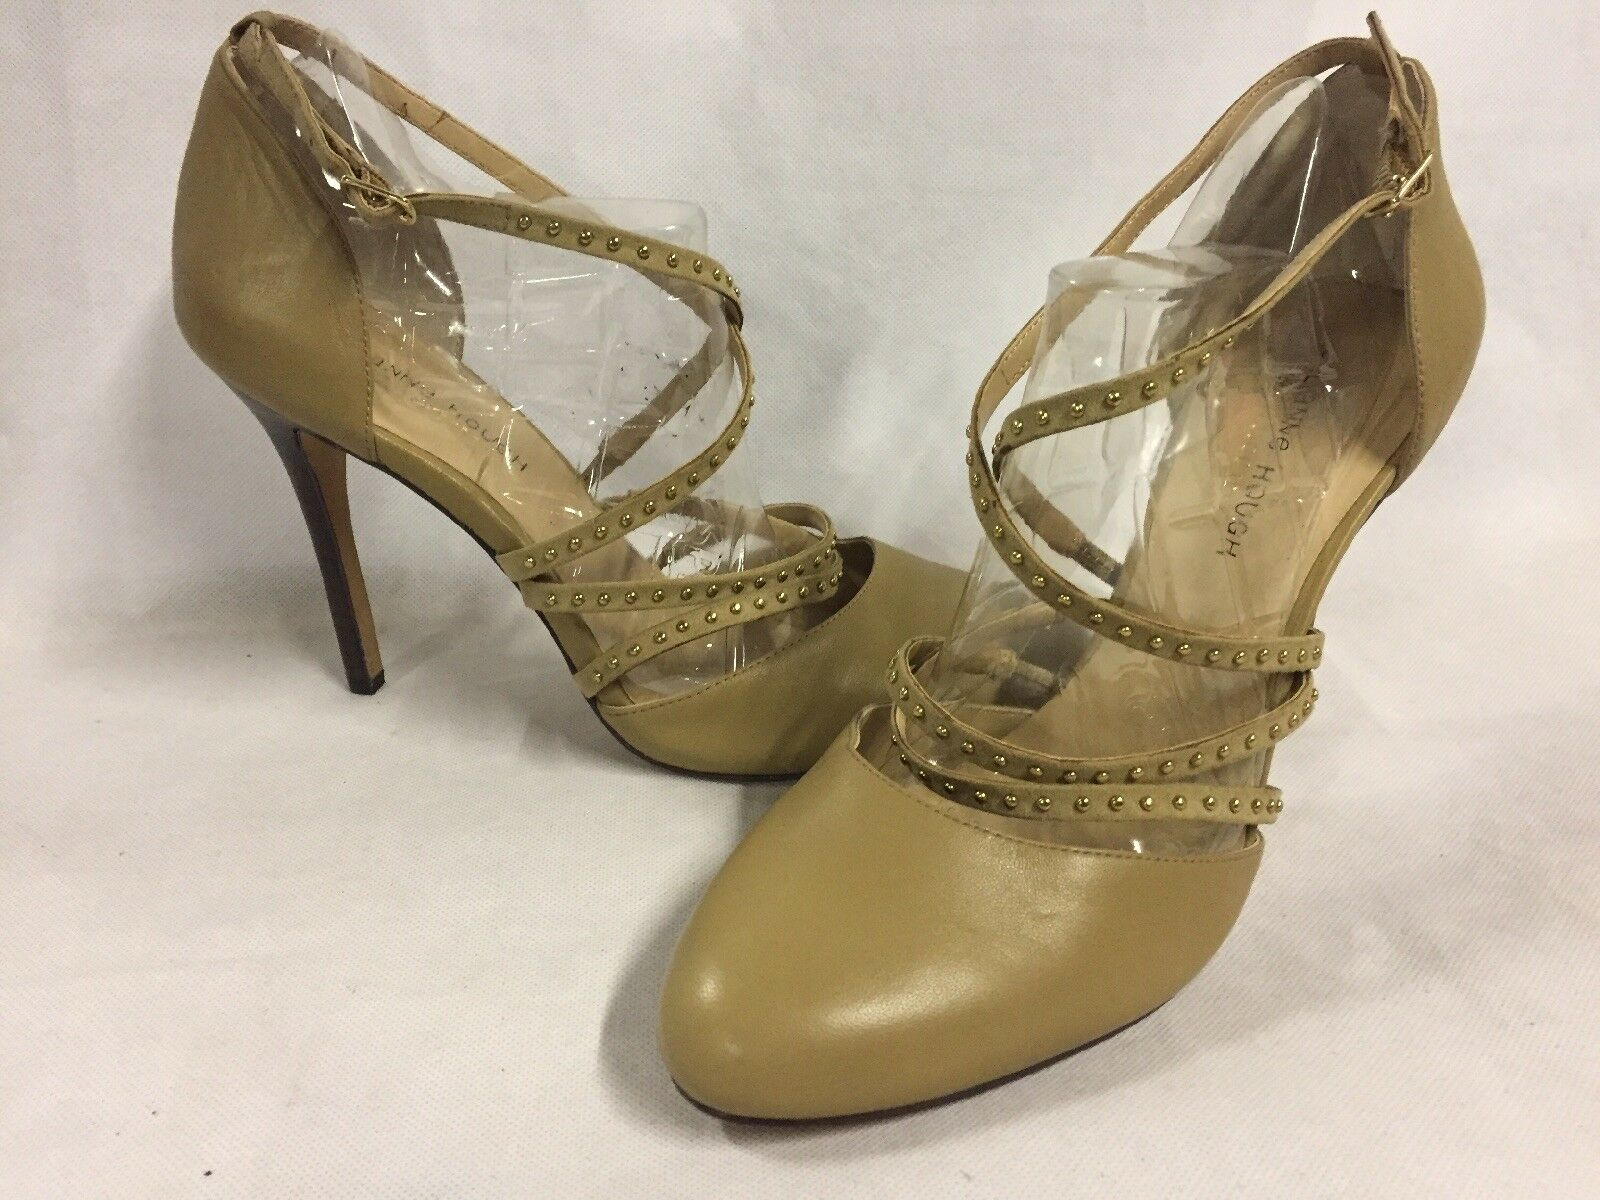 Julianne Hough Women's Heels shoes, Tan, Size 11 B Eur 41,Bridal.Christmas